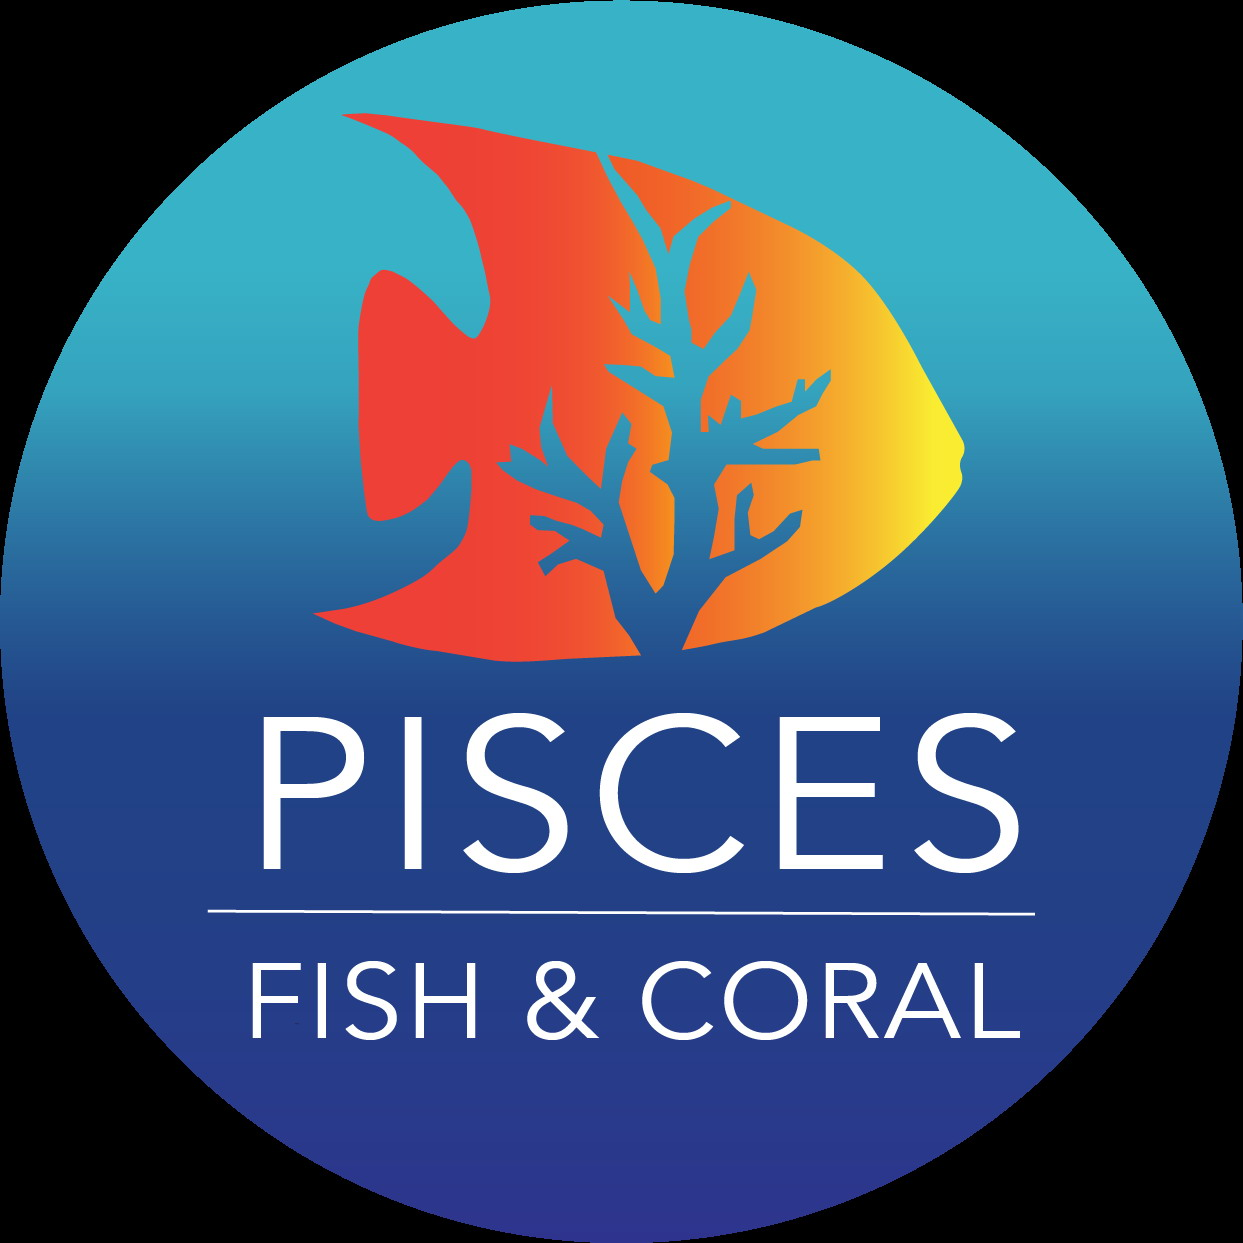 Pisces Fish & Coral